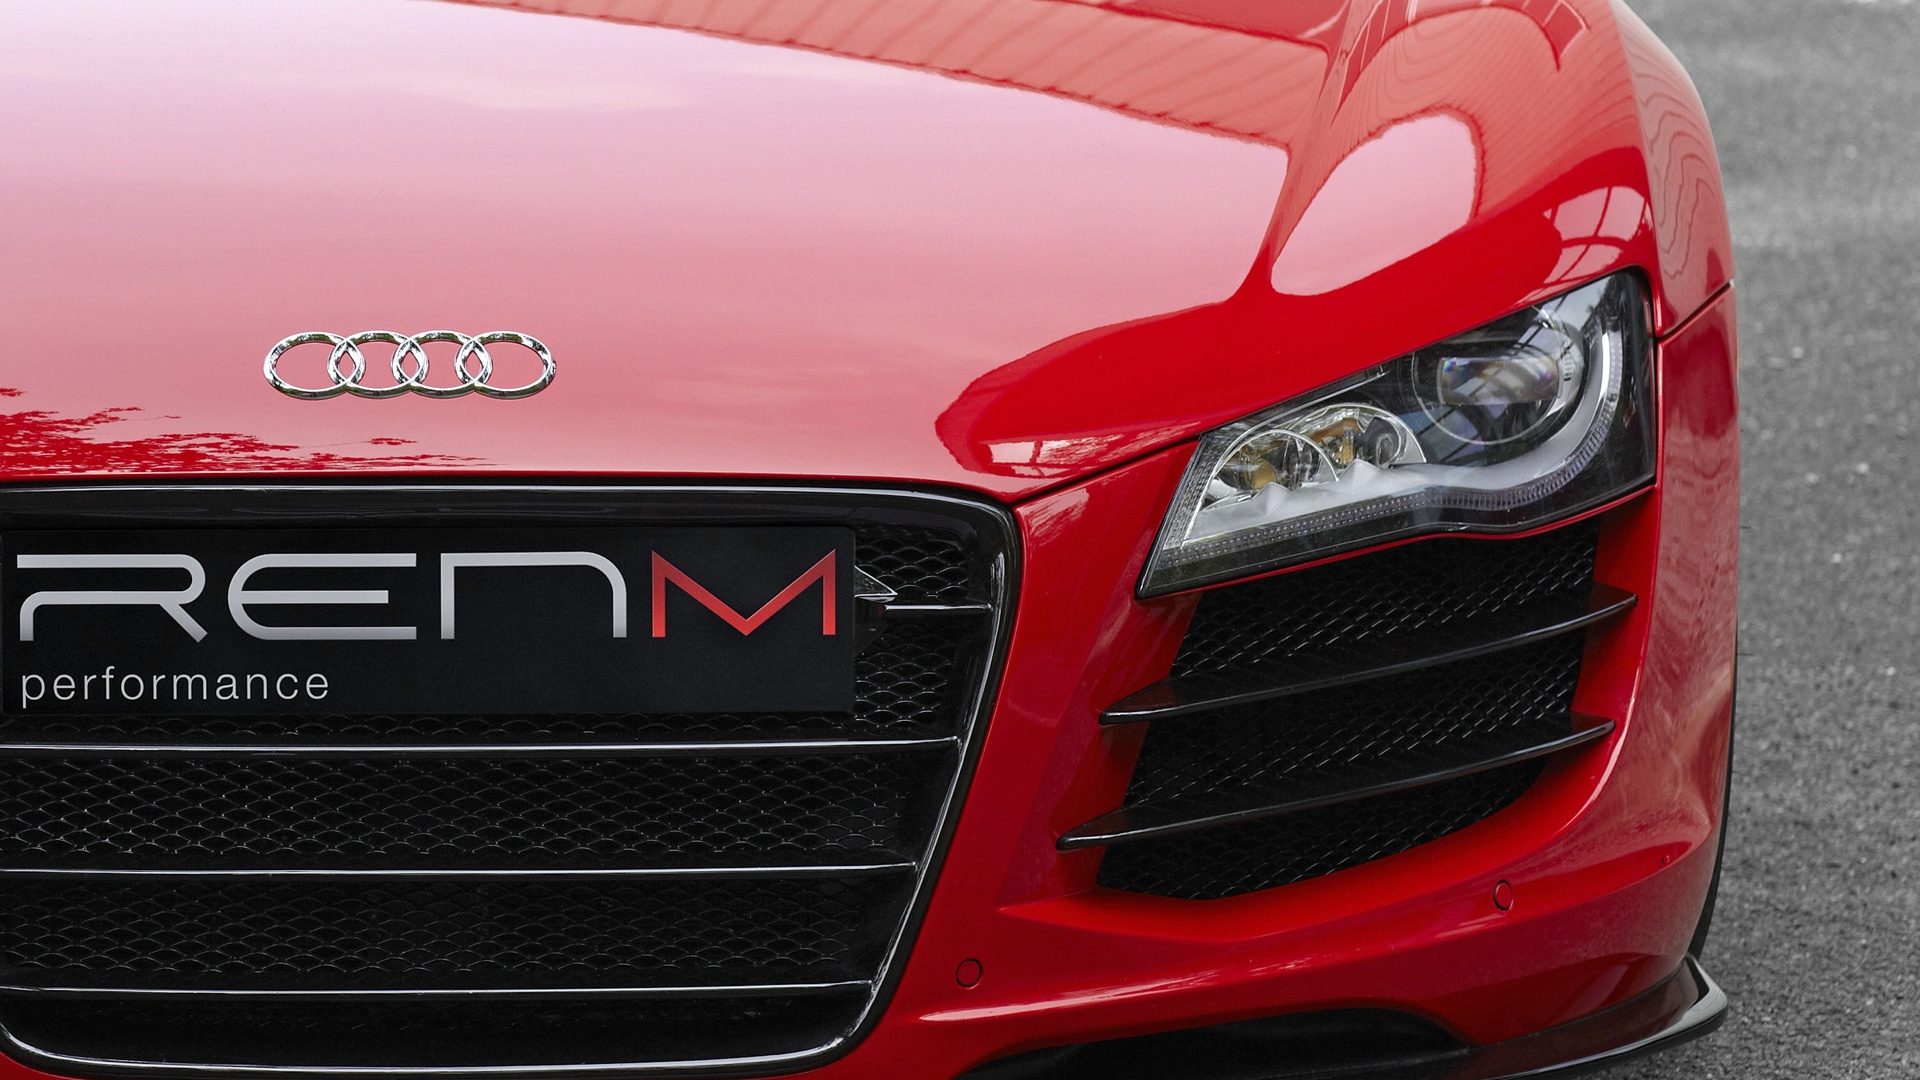 1920x1080 Red Audi R8 V10 Headlight Desktop PC And Mac Wallpaper